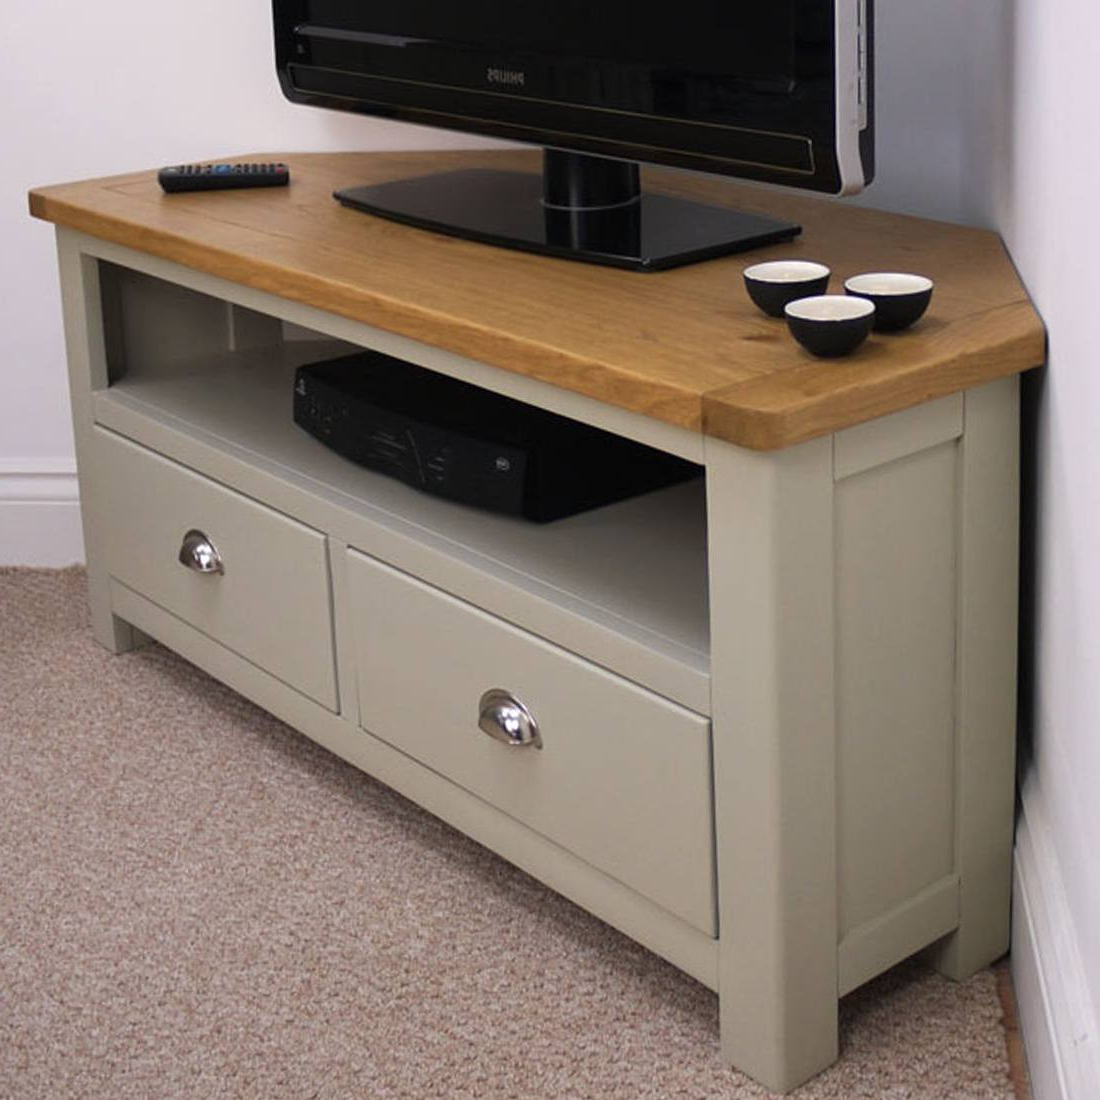 Aspen Oak Large Corner Tv Unit / Painted Tv Stand / Sage Grey With With Regard To Famous Grey Corner Tv Stands (Gallery 6 of 20)